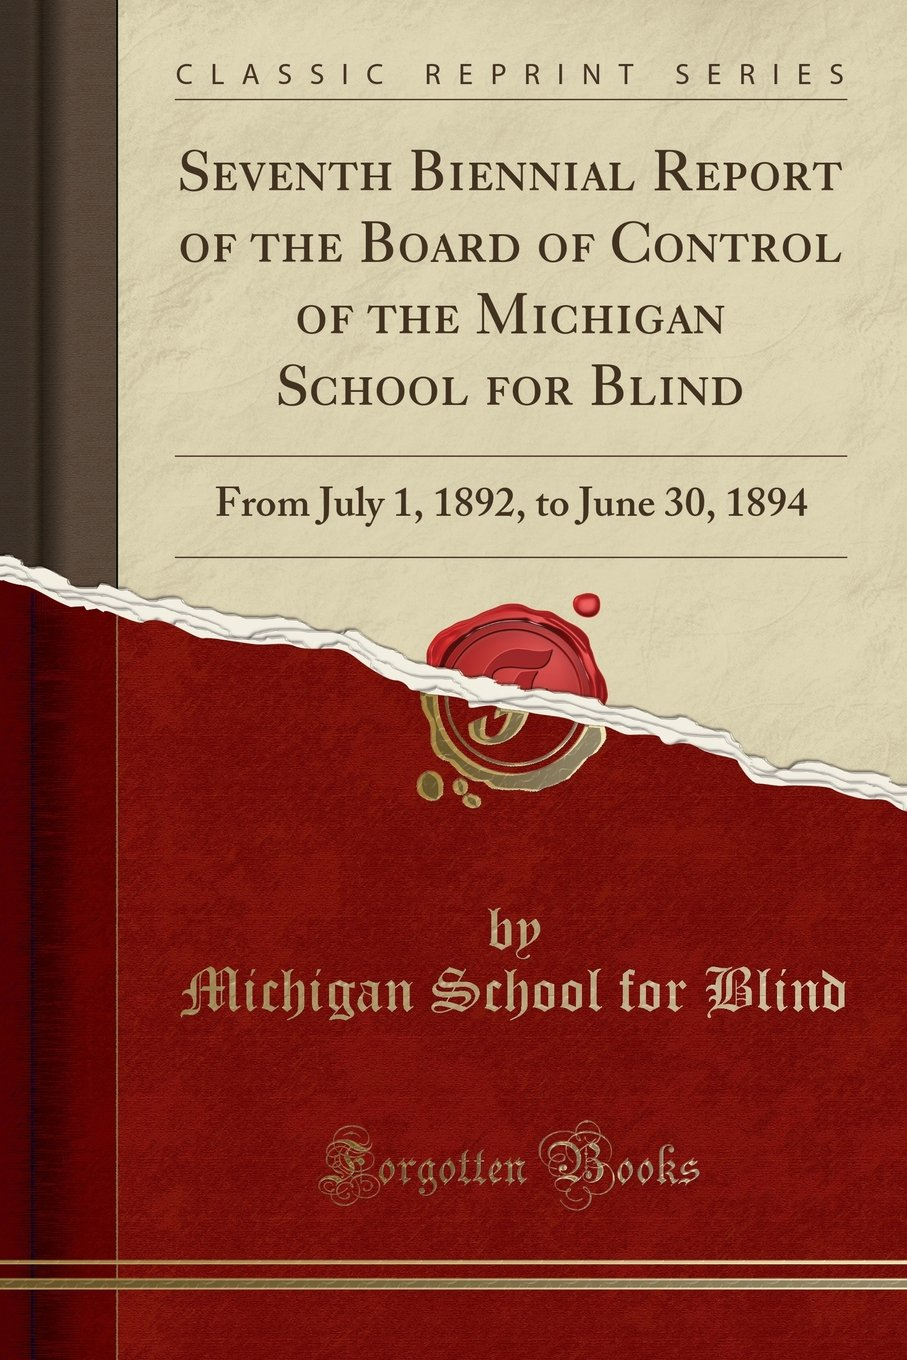 Read Online Seventh Biennial Report of the Board of Control of the Michigan School for Blind: From July 1, 1892, to June 30, 1894 (Classic Reprint) pdf